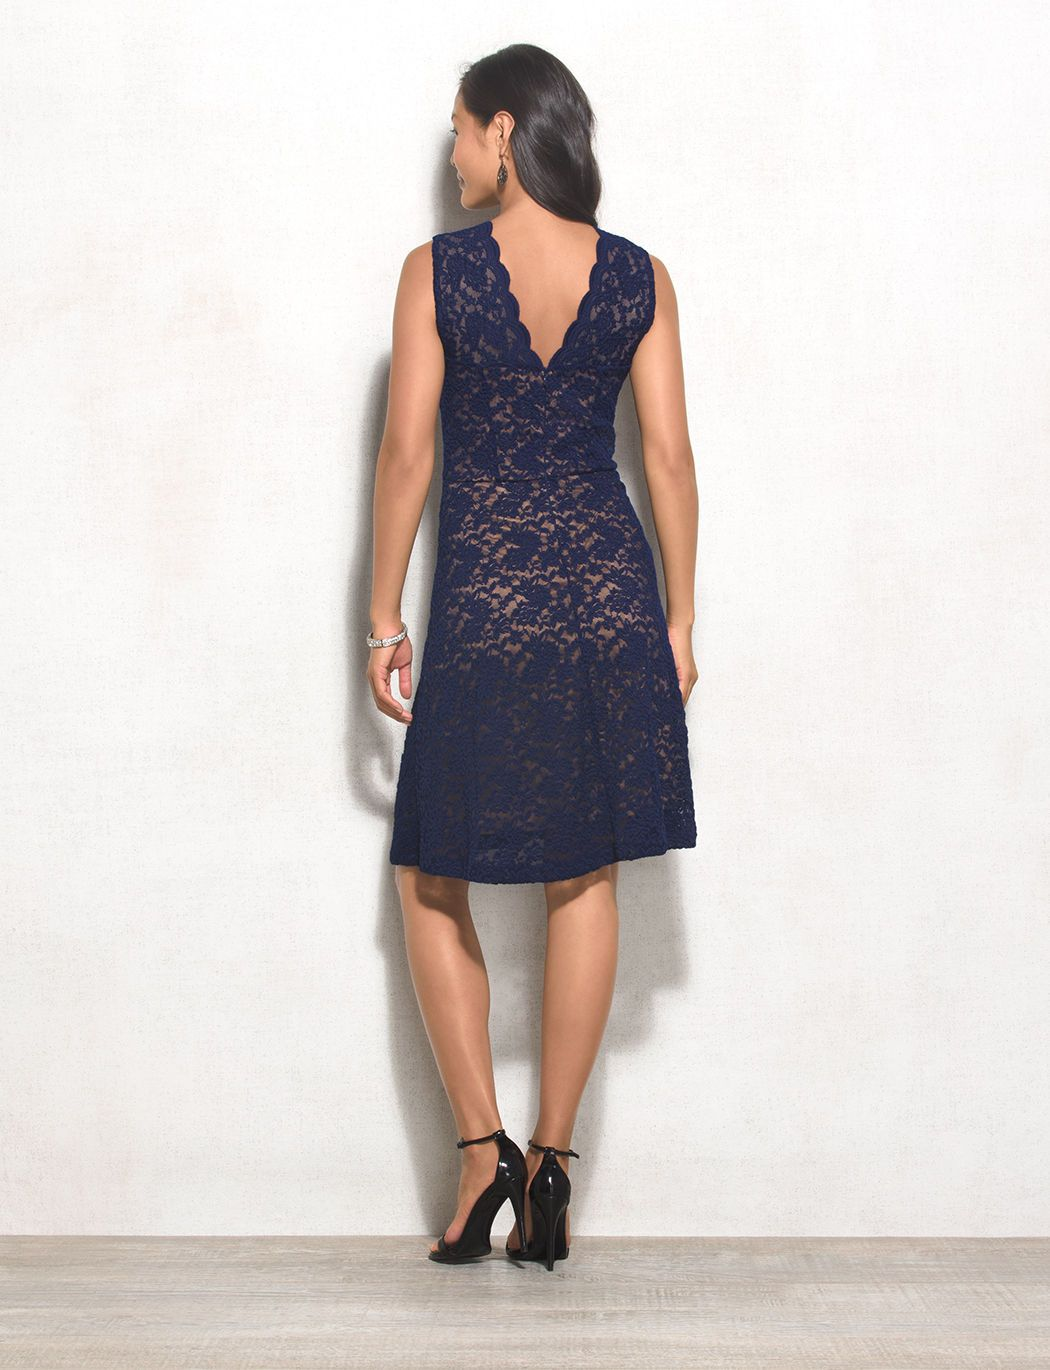 Lace dress navy  Because lace never goes out of style this chic navy number is